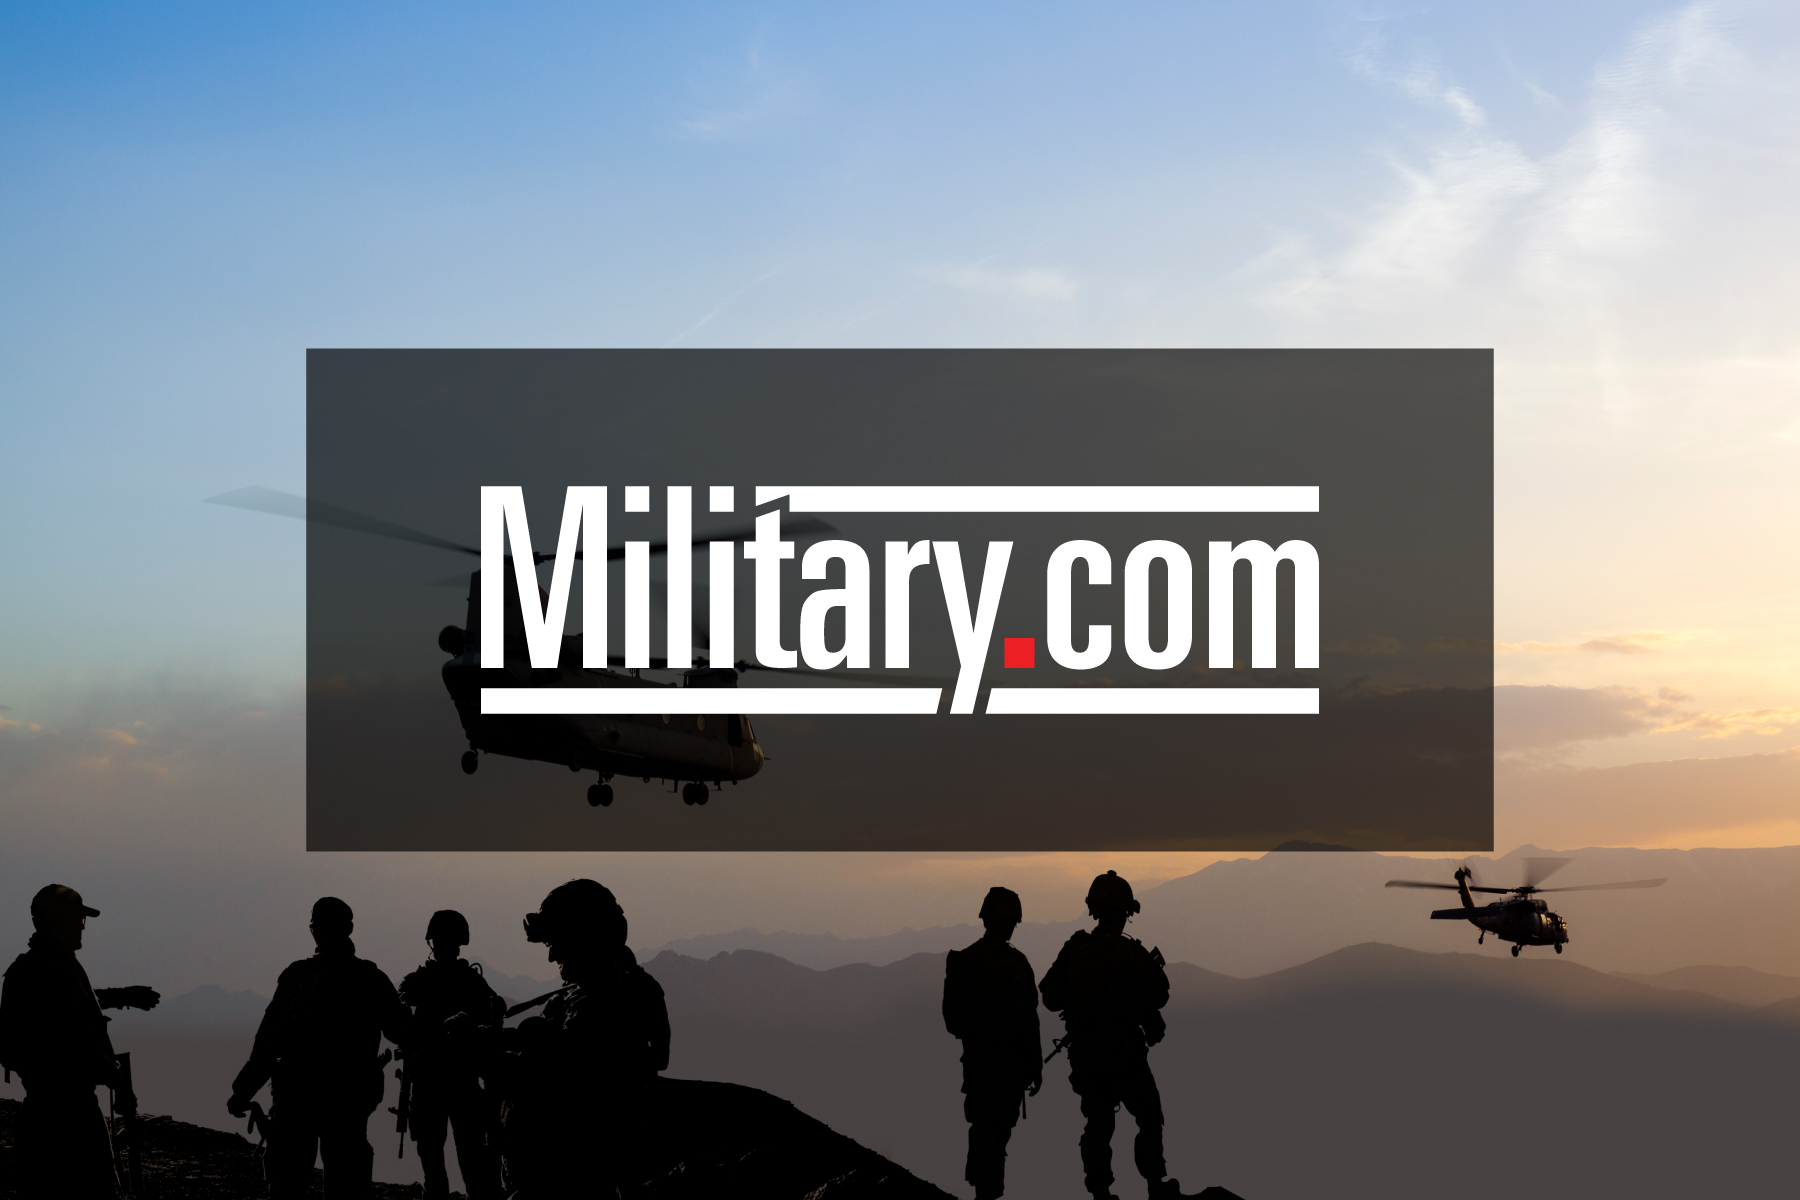 Which service is better for someone who would like to possibly make the military a career?